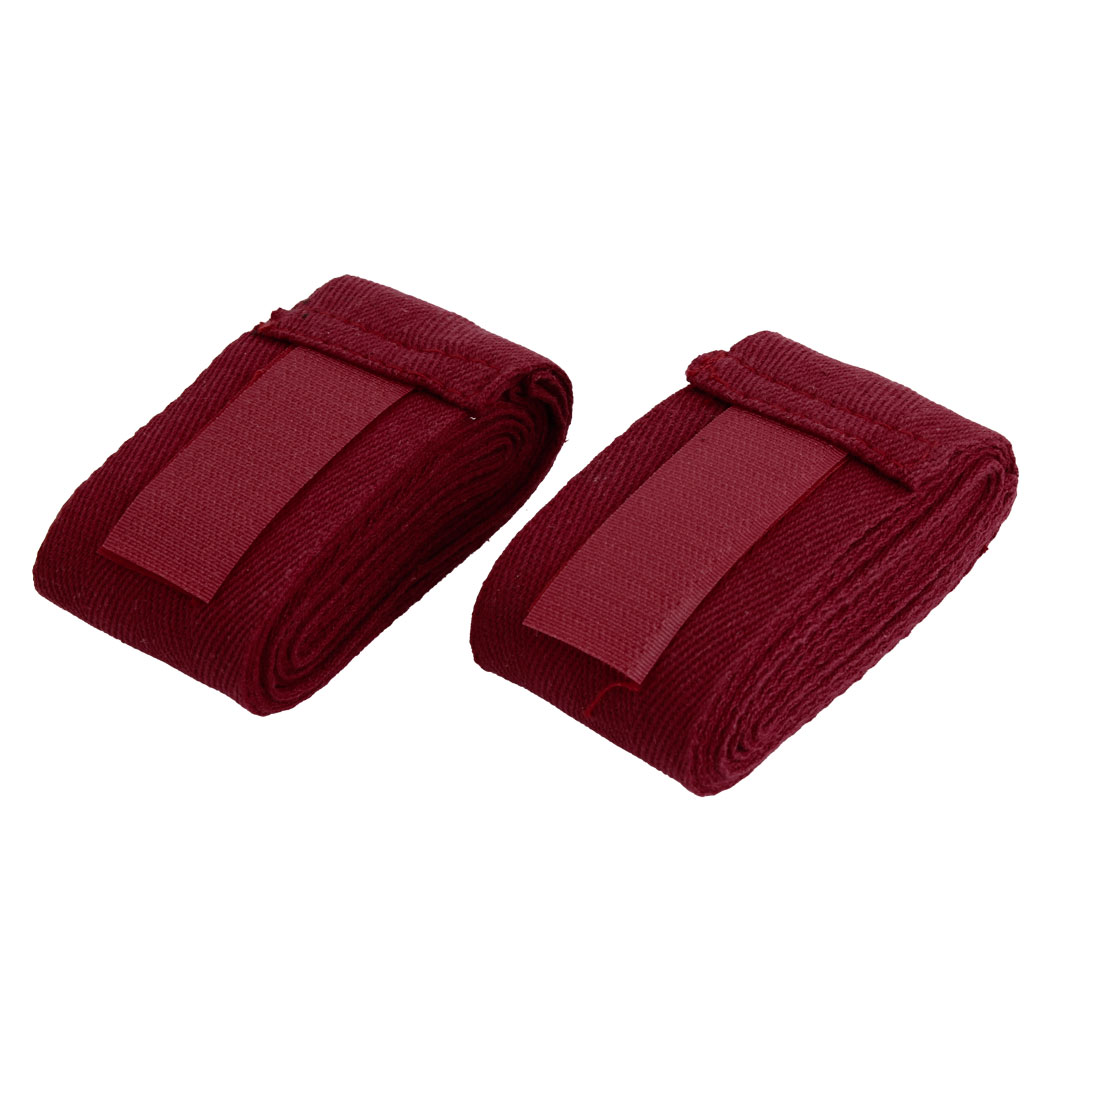 Dark Red Boxing Hand Wrap Supporter Bandage Wrist Protective Gloves 2PCS